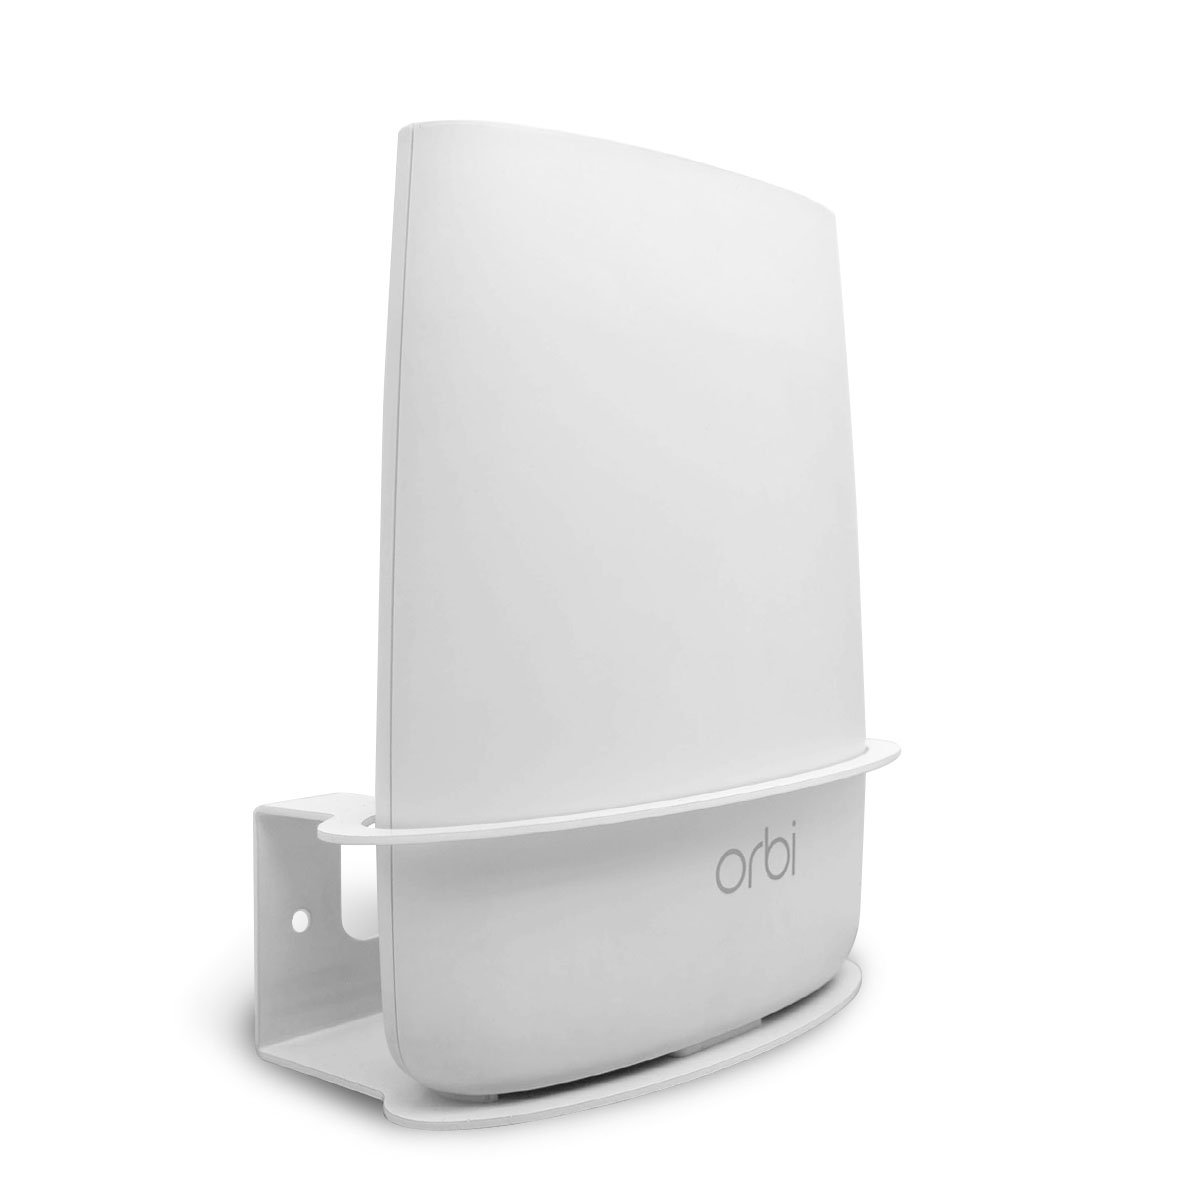 Wall Mount for Netgear Orbi, ALLICAVER Sturdy Metal Made Mount Stand Holder for Orbi Router RBS40, RBK40, RBS50, RBK50, AC2200, AC3000. (1 pcs)